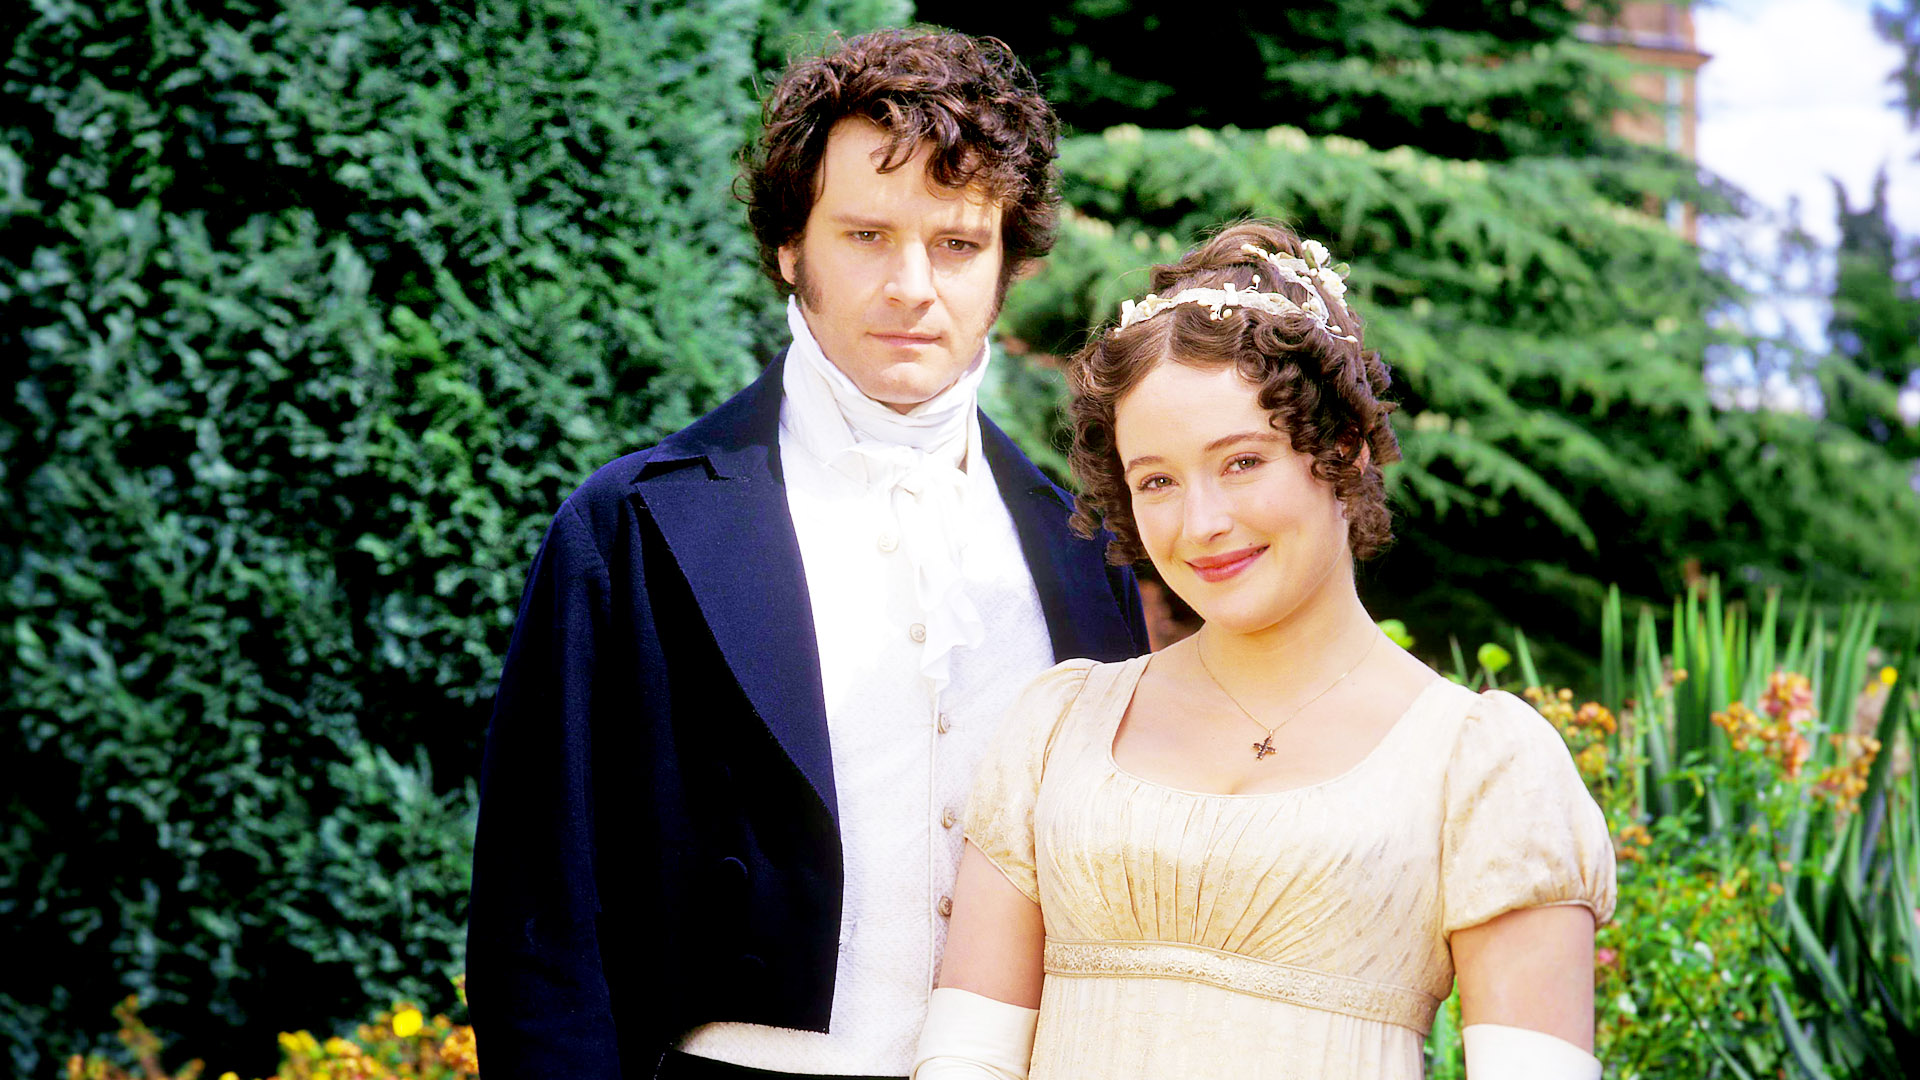 the effect of pride and prejudice on darcy and elizabeths relationship essay Essay editing services analyse the portrayal of the relationship between elizabeth and darcy in 'pride and prejudice' offended by his pride, elizabeth.